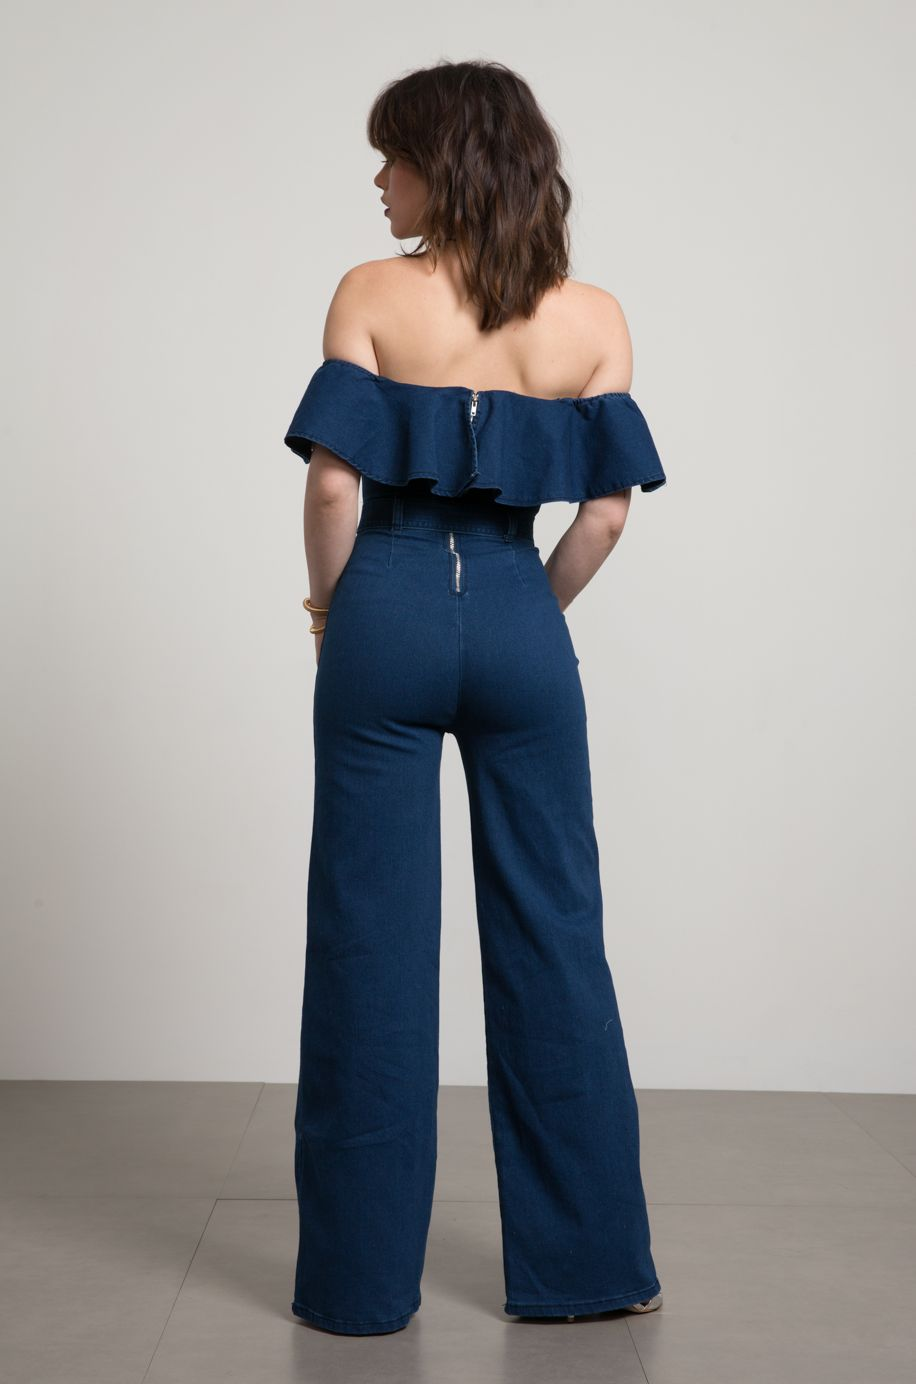 960a0ccb95c Zoe Denim Jumpsuit – dustoglory